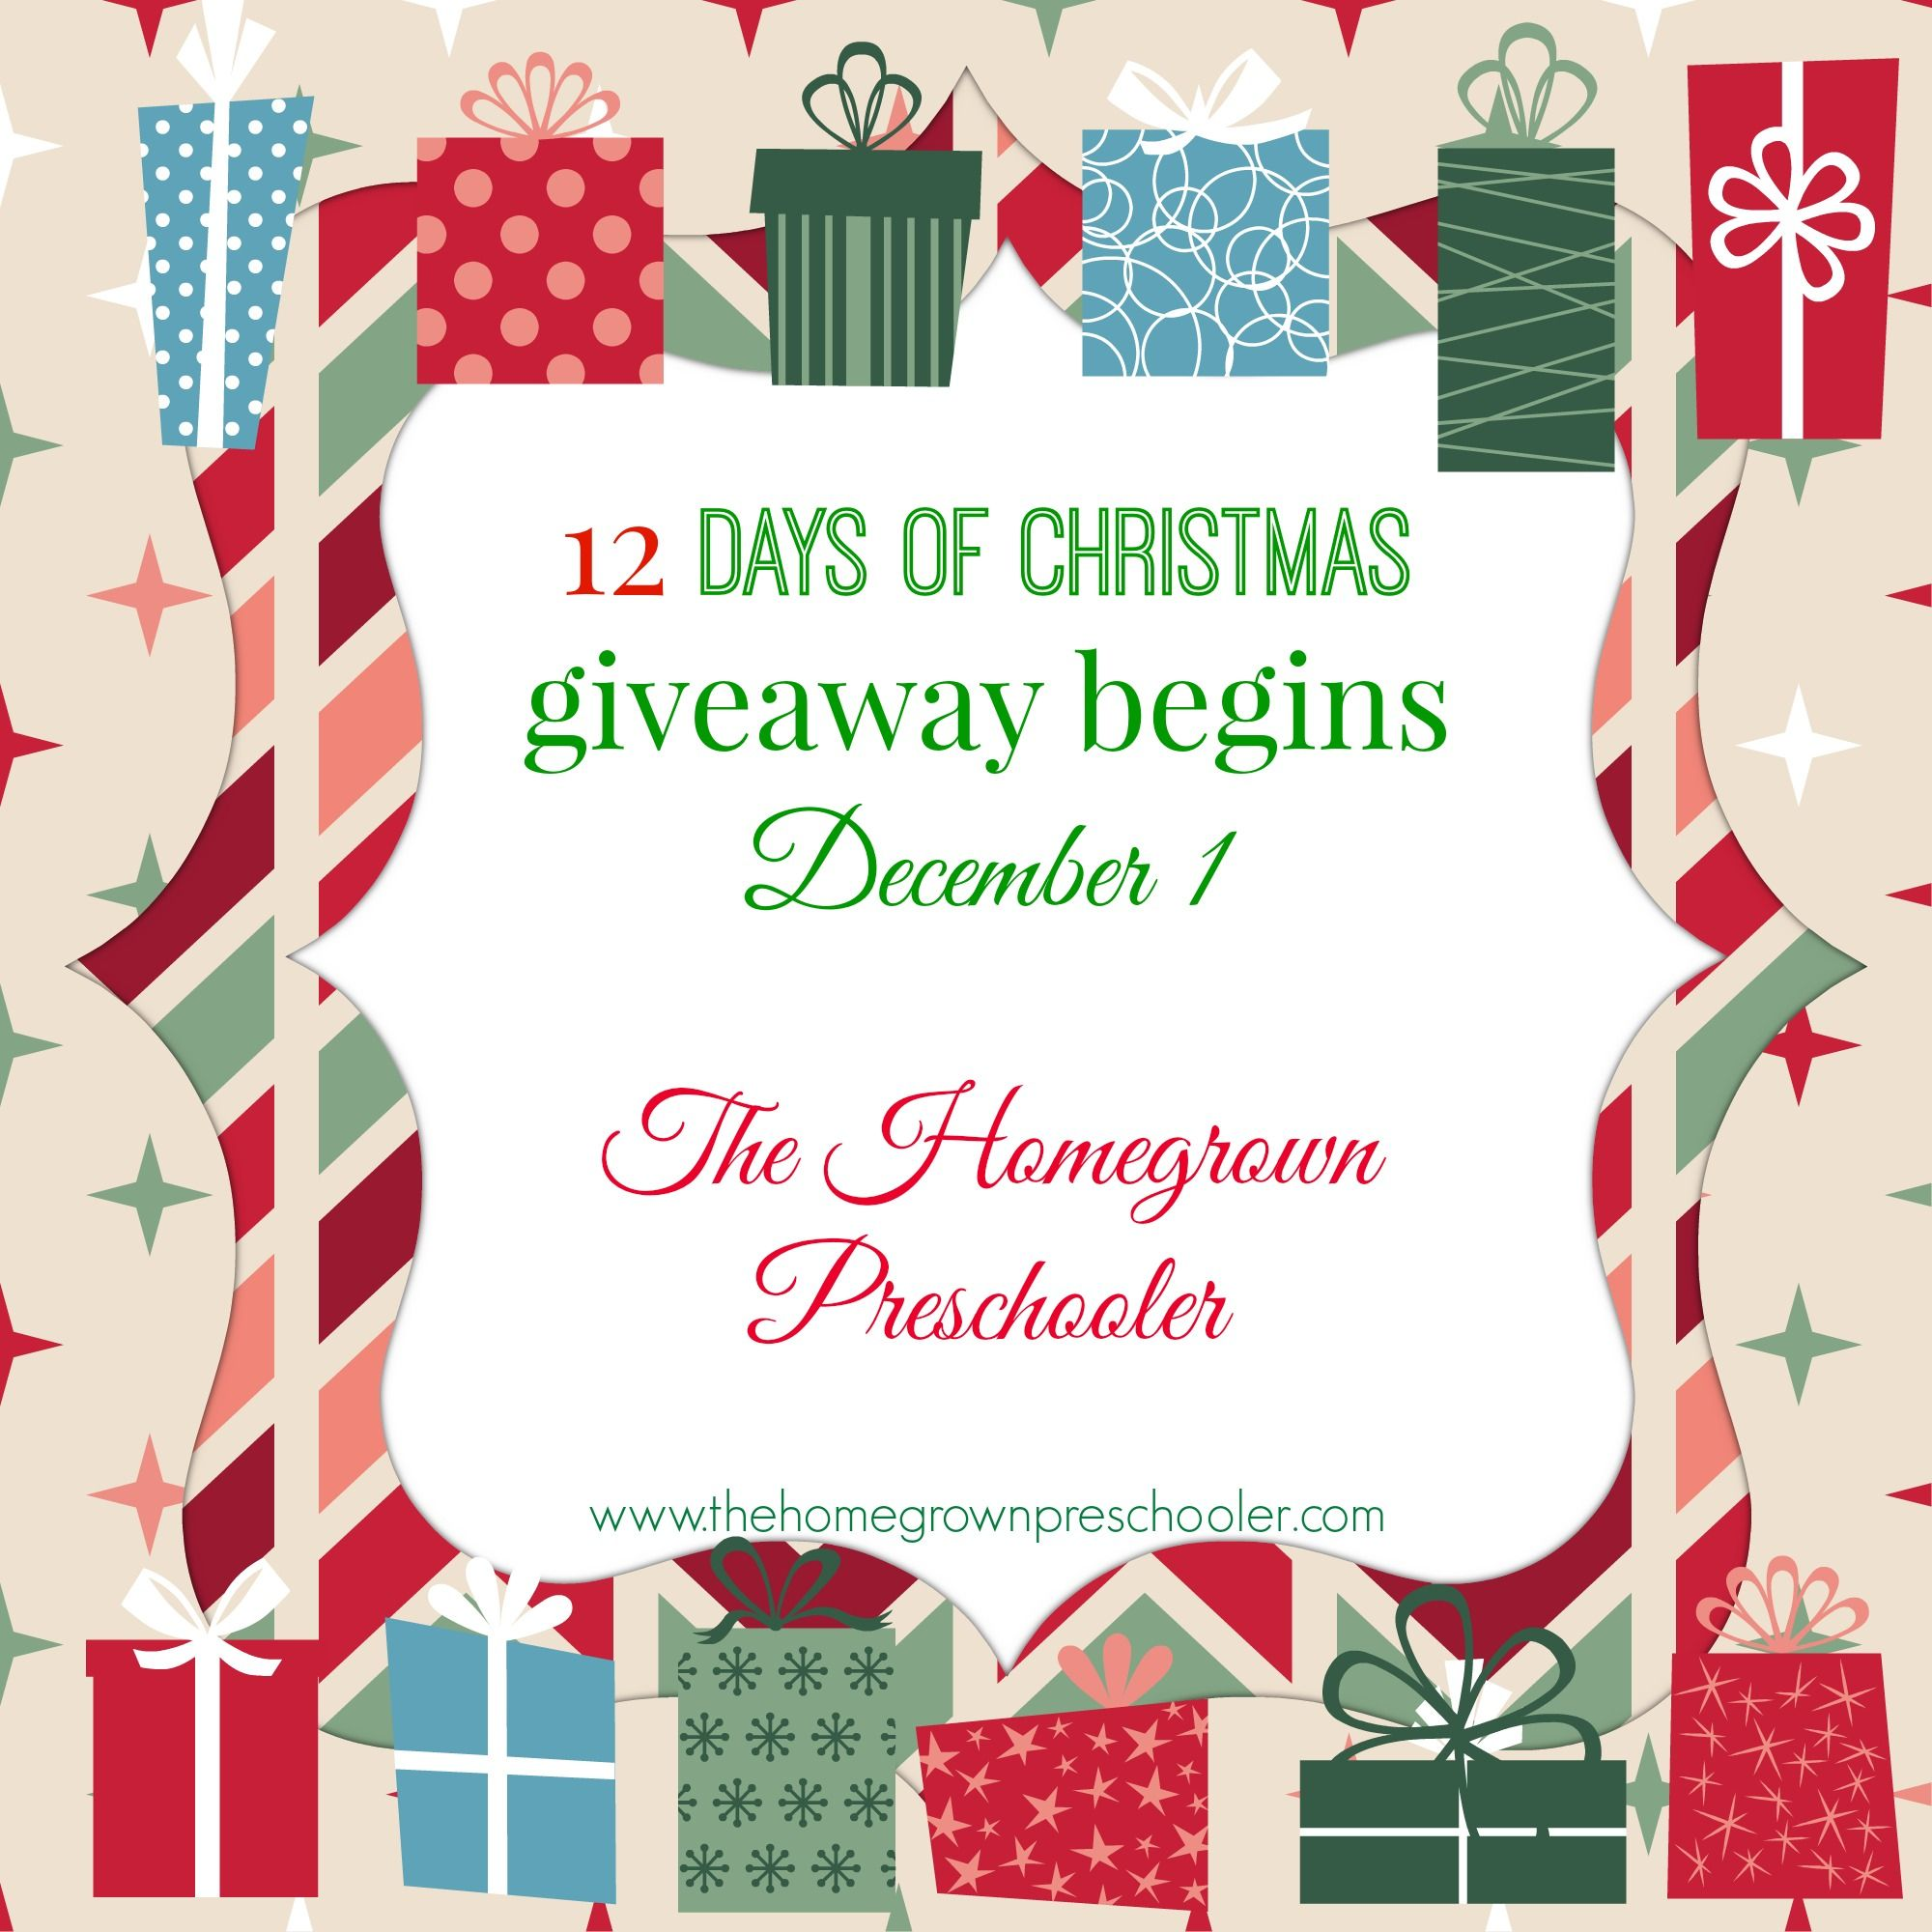 12 Days Of Christmas Is Coming Soon